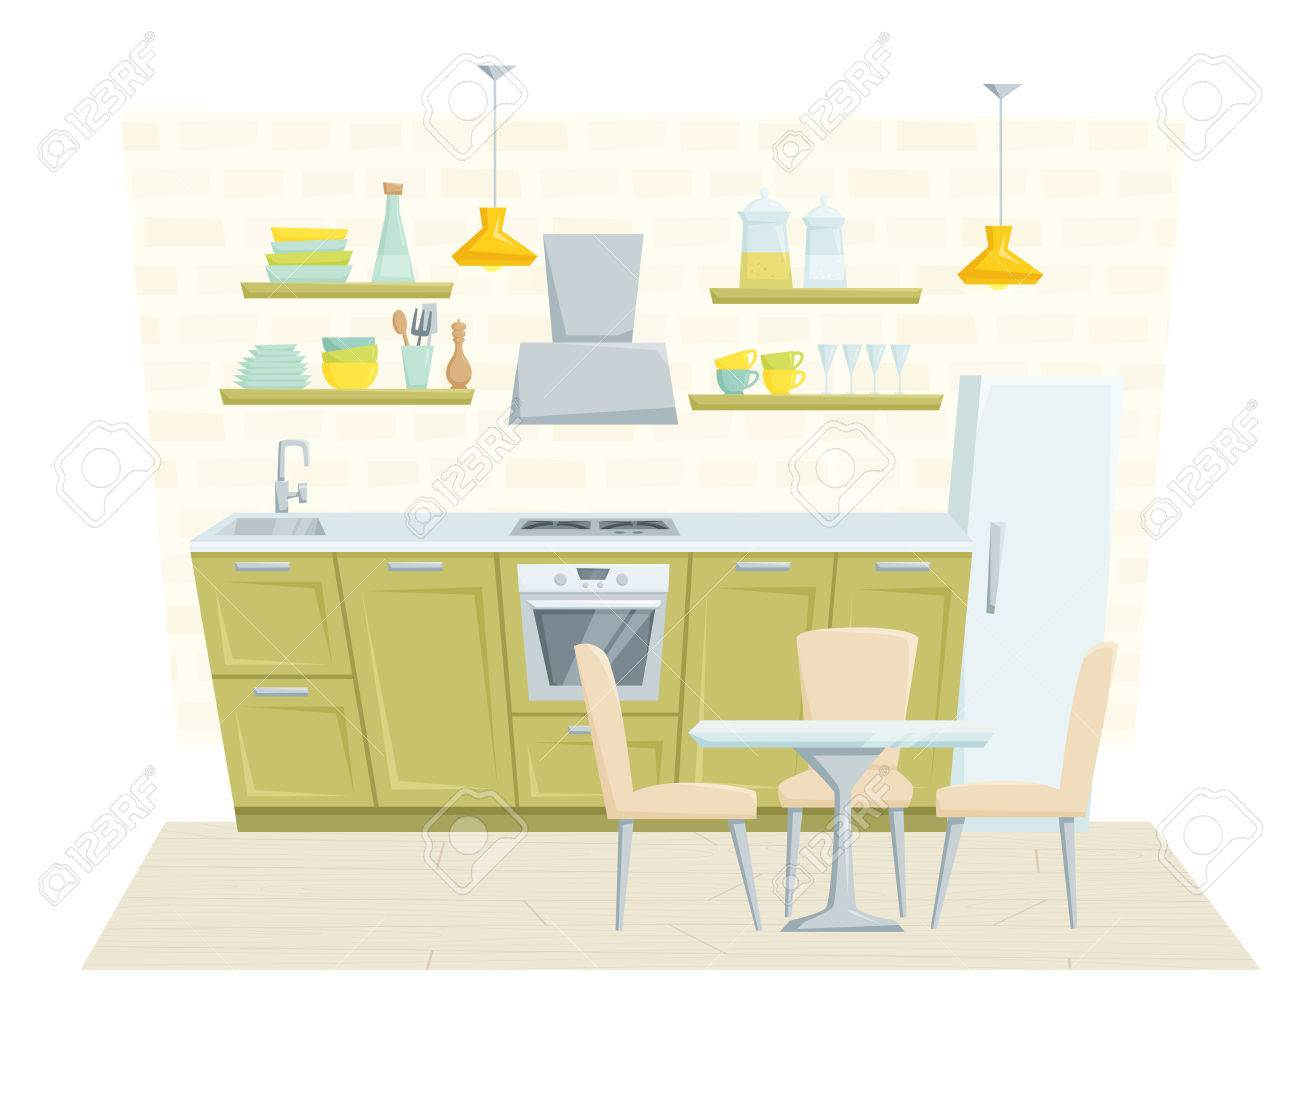 Cartoon kitchen table - Kitchen Interior With Furniture And Decoration In Modern Style Kitchen Interior Cartoon Vector Illustration